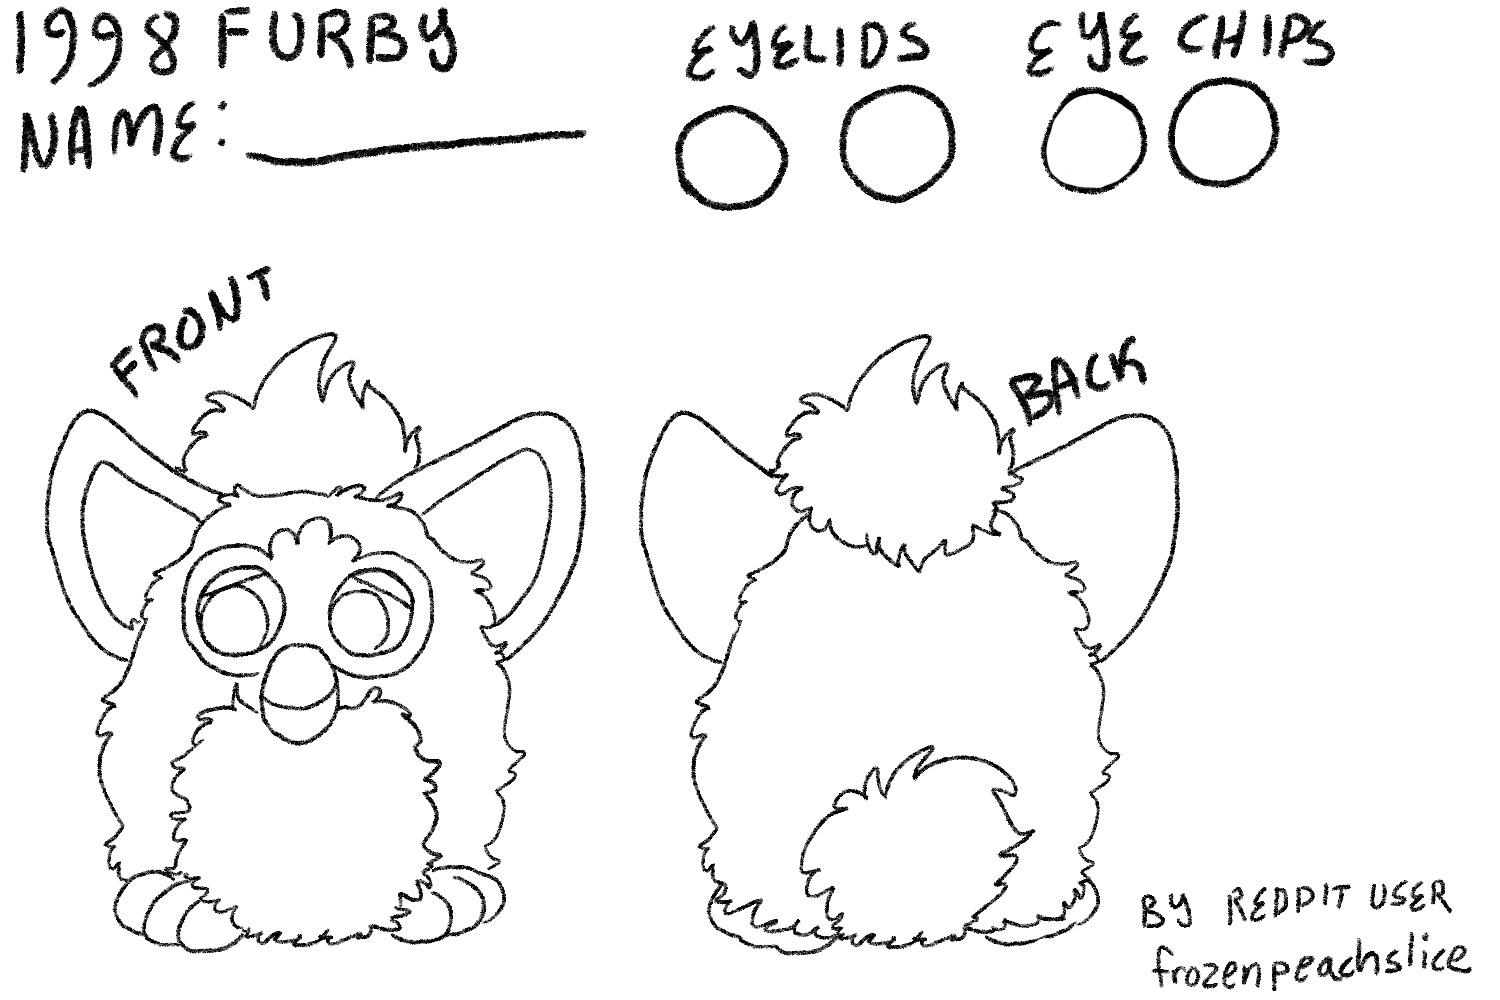 custom furby reference guide! i threw this together to